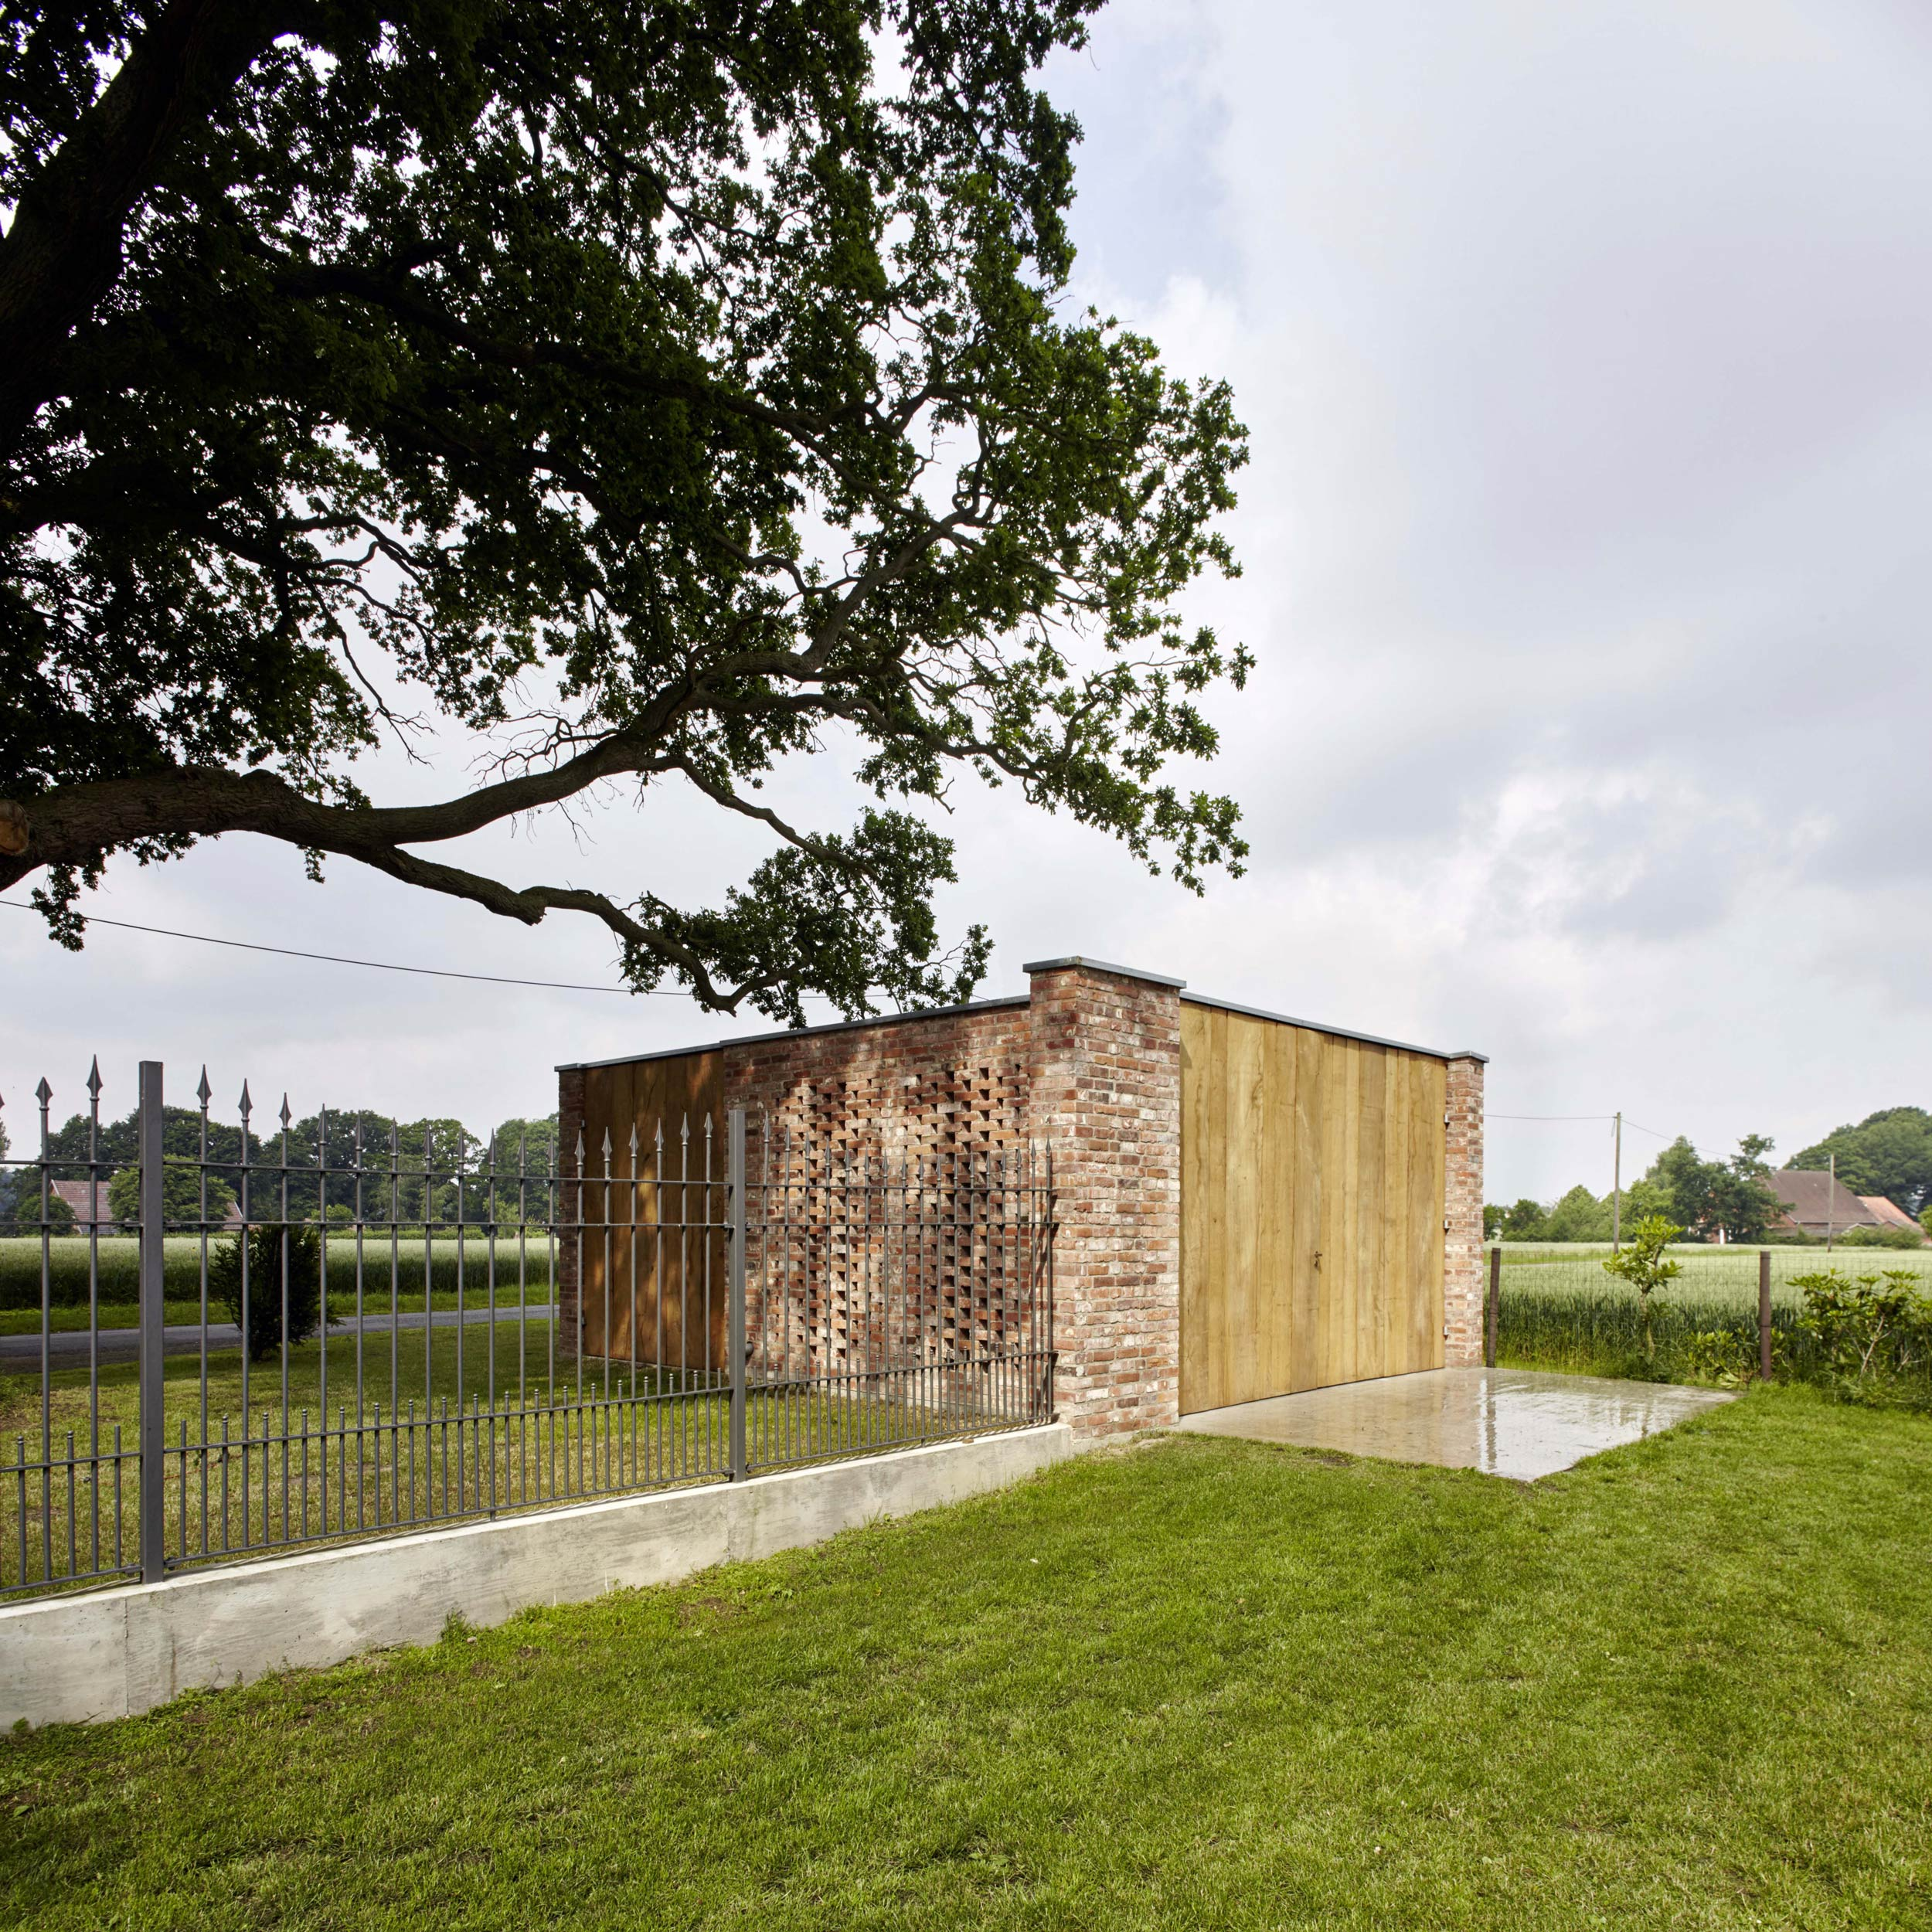 christian_burmester_architecture_wirth_remisenpavillon_01